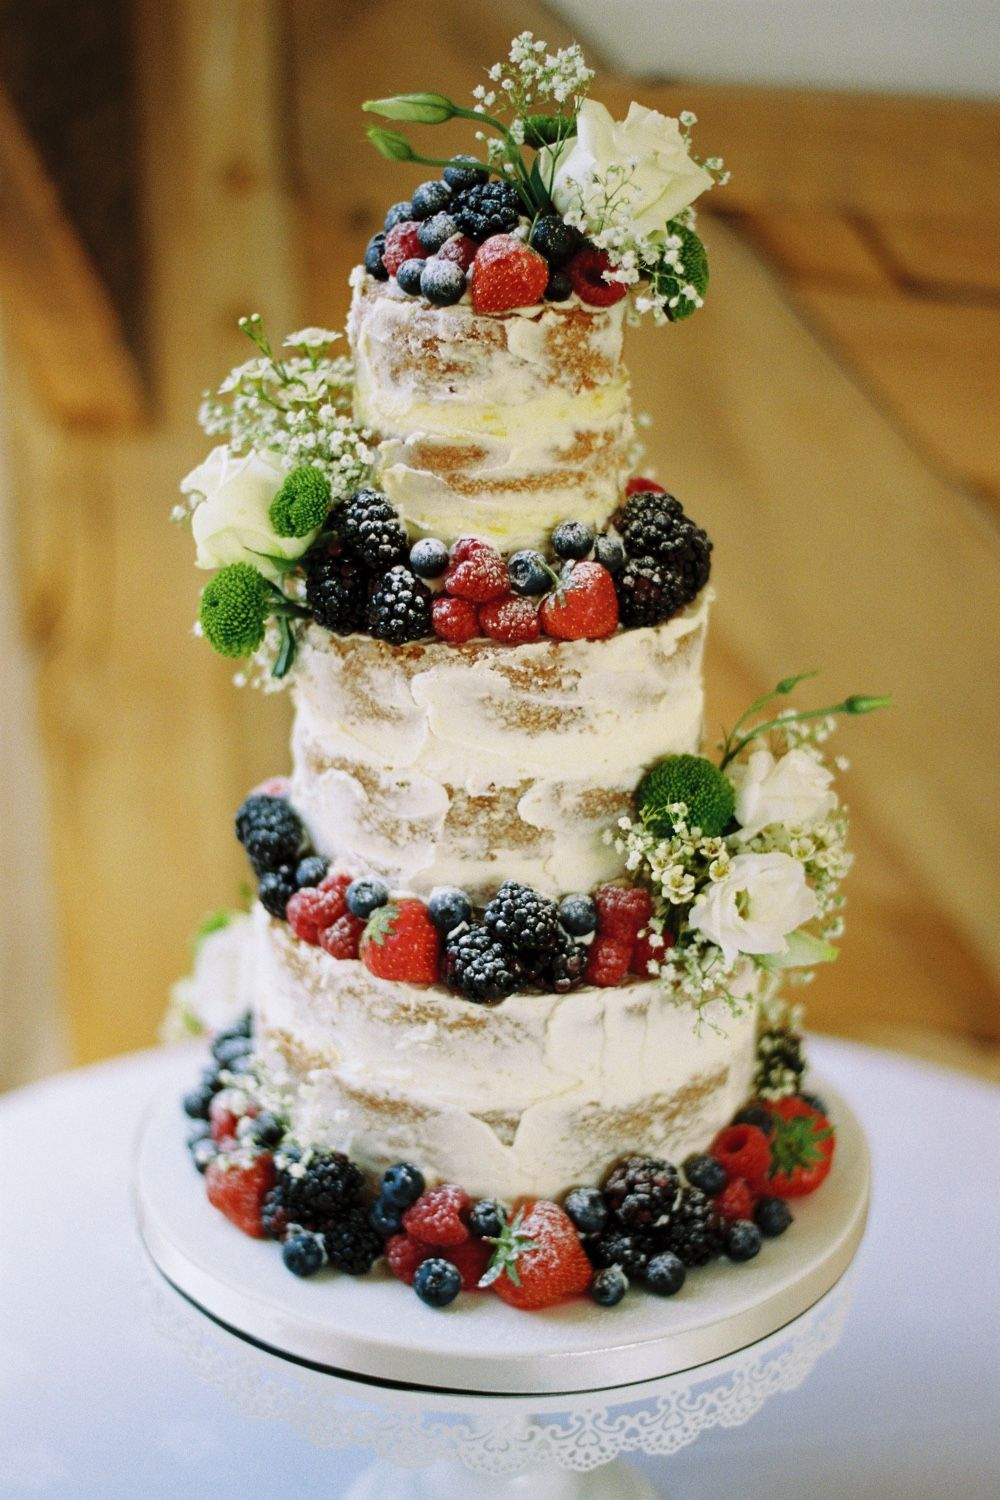 An elegant autumn wedding planned in three months    Pinterest     Delicious fruit and flower naked cake  Photography Taylor Barnes   wedding   cake  naked